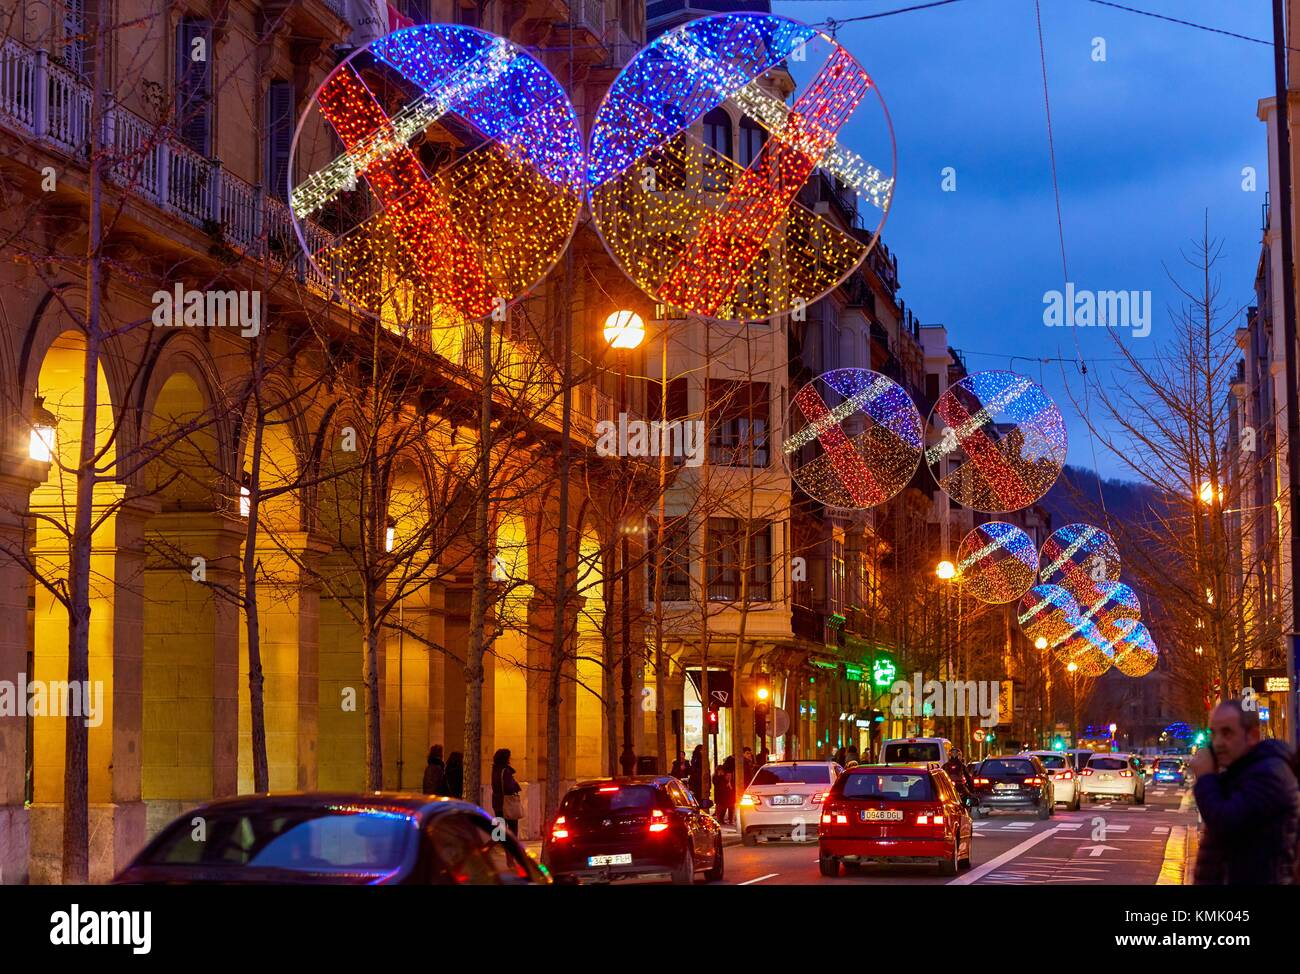 San Martin street, Christmas, Donostia, San Sebastian, Gipuzkoa, Basque Country, Spain, Europe Stock Photo